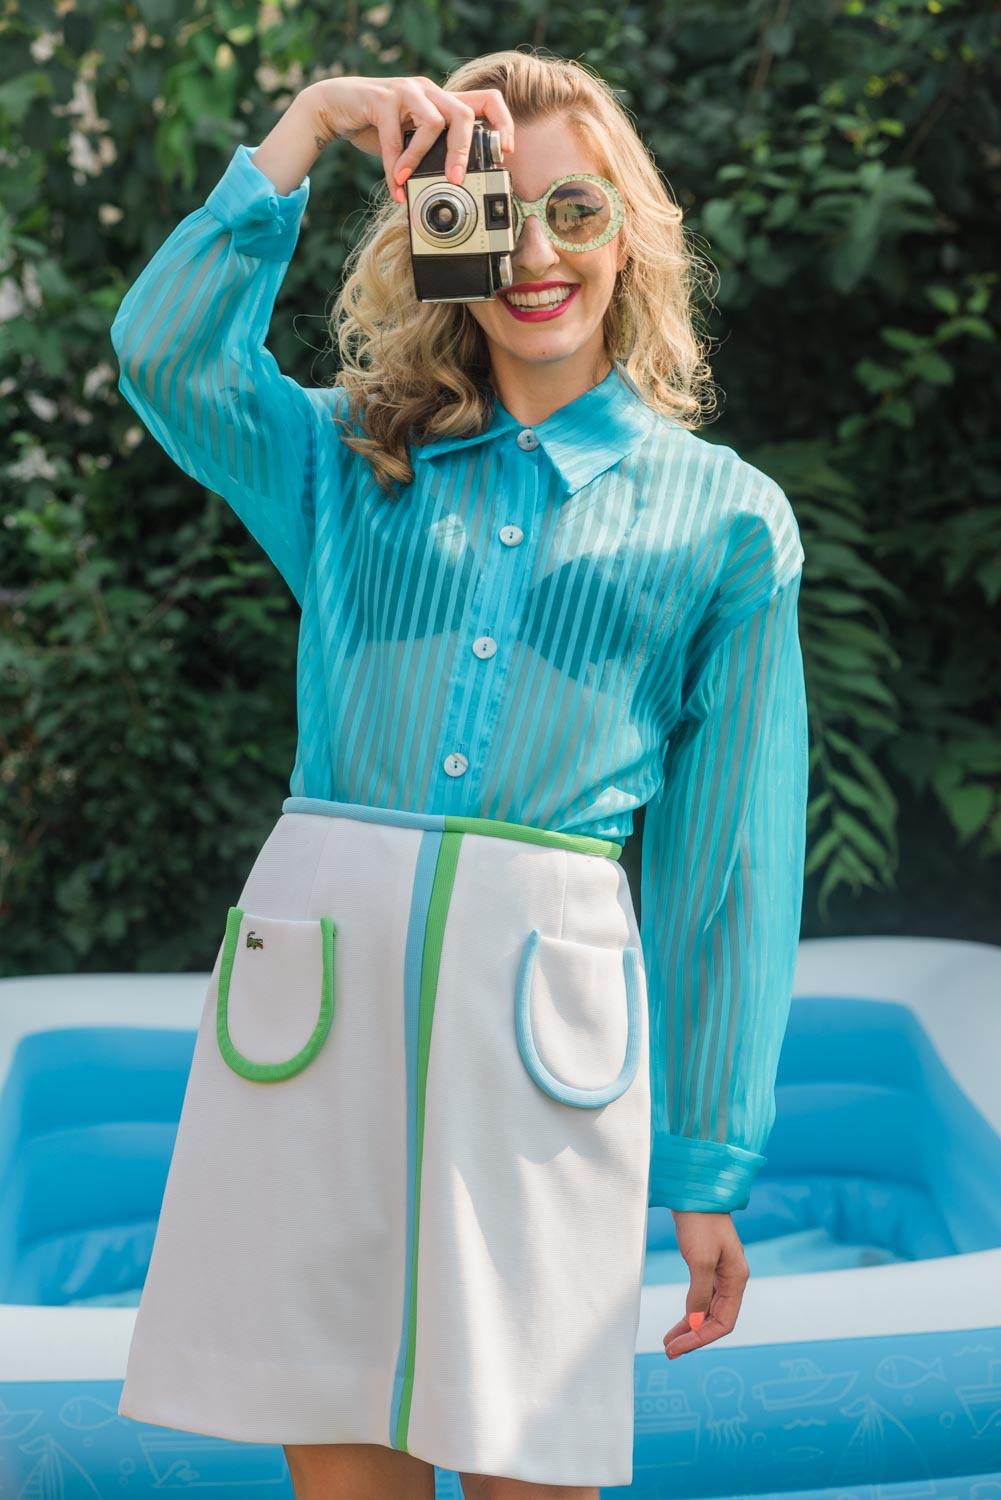 portrait of Amanda in a vintage sheer blue pin striped shirt and white skirt trimmed in white holding a vintage kodak camera